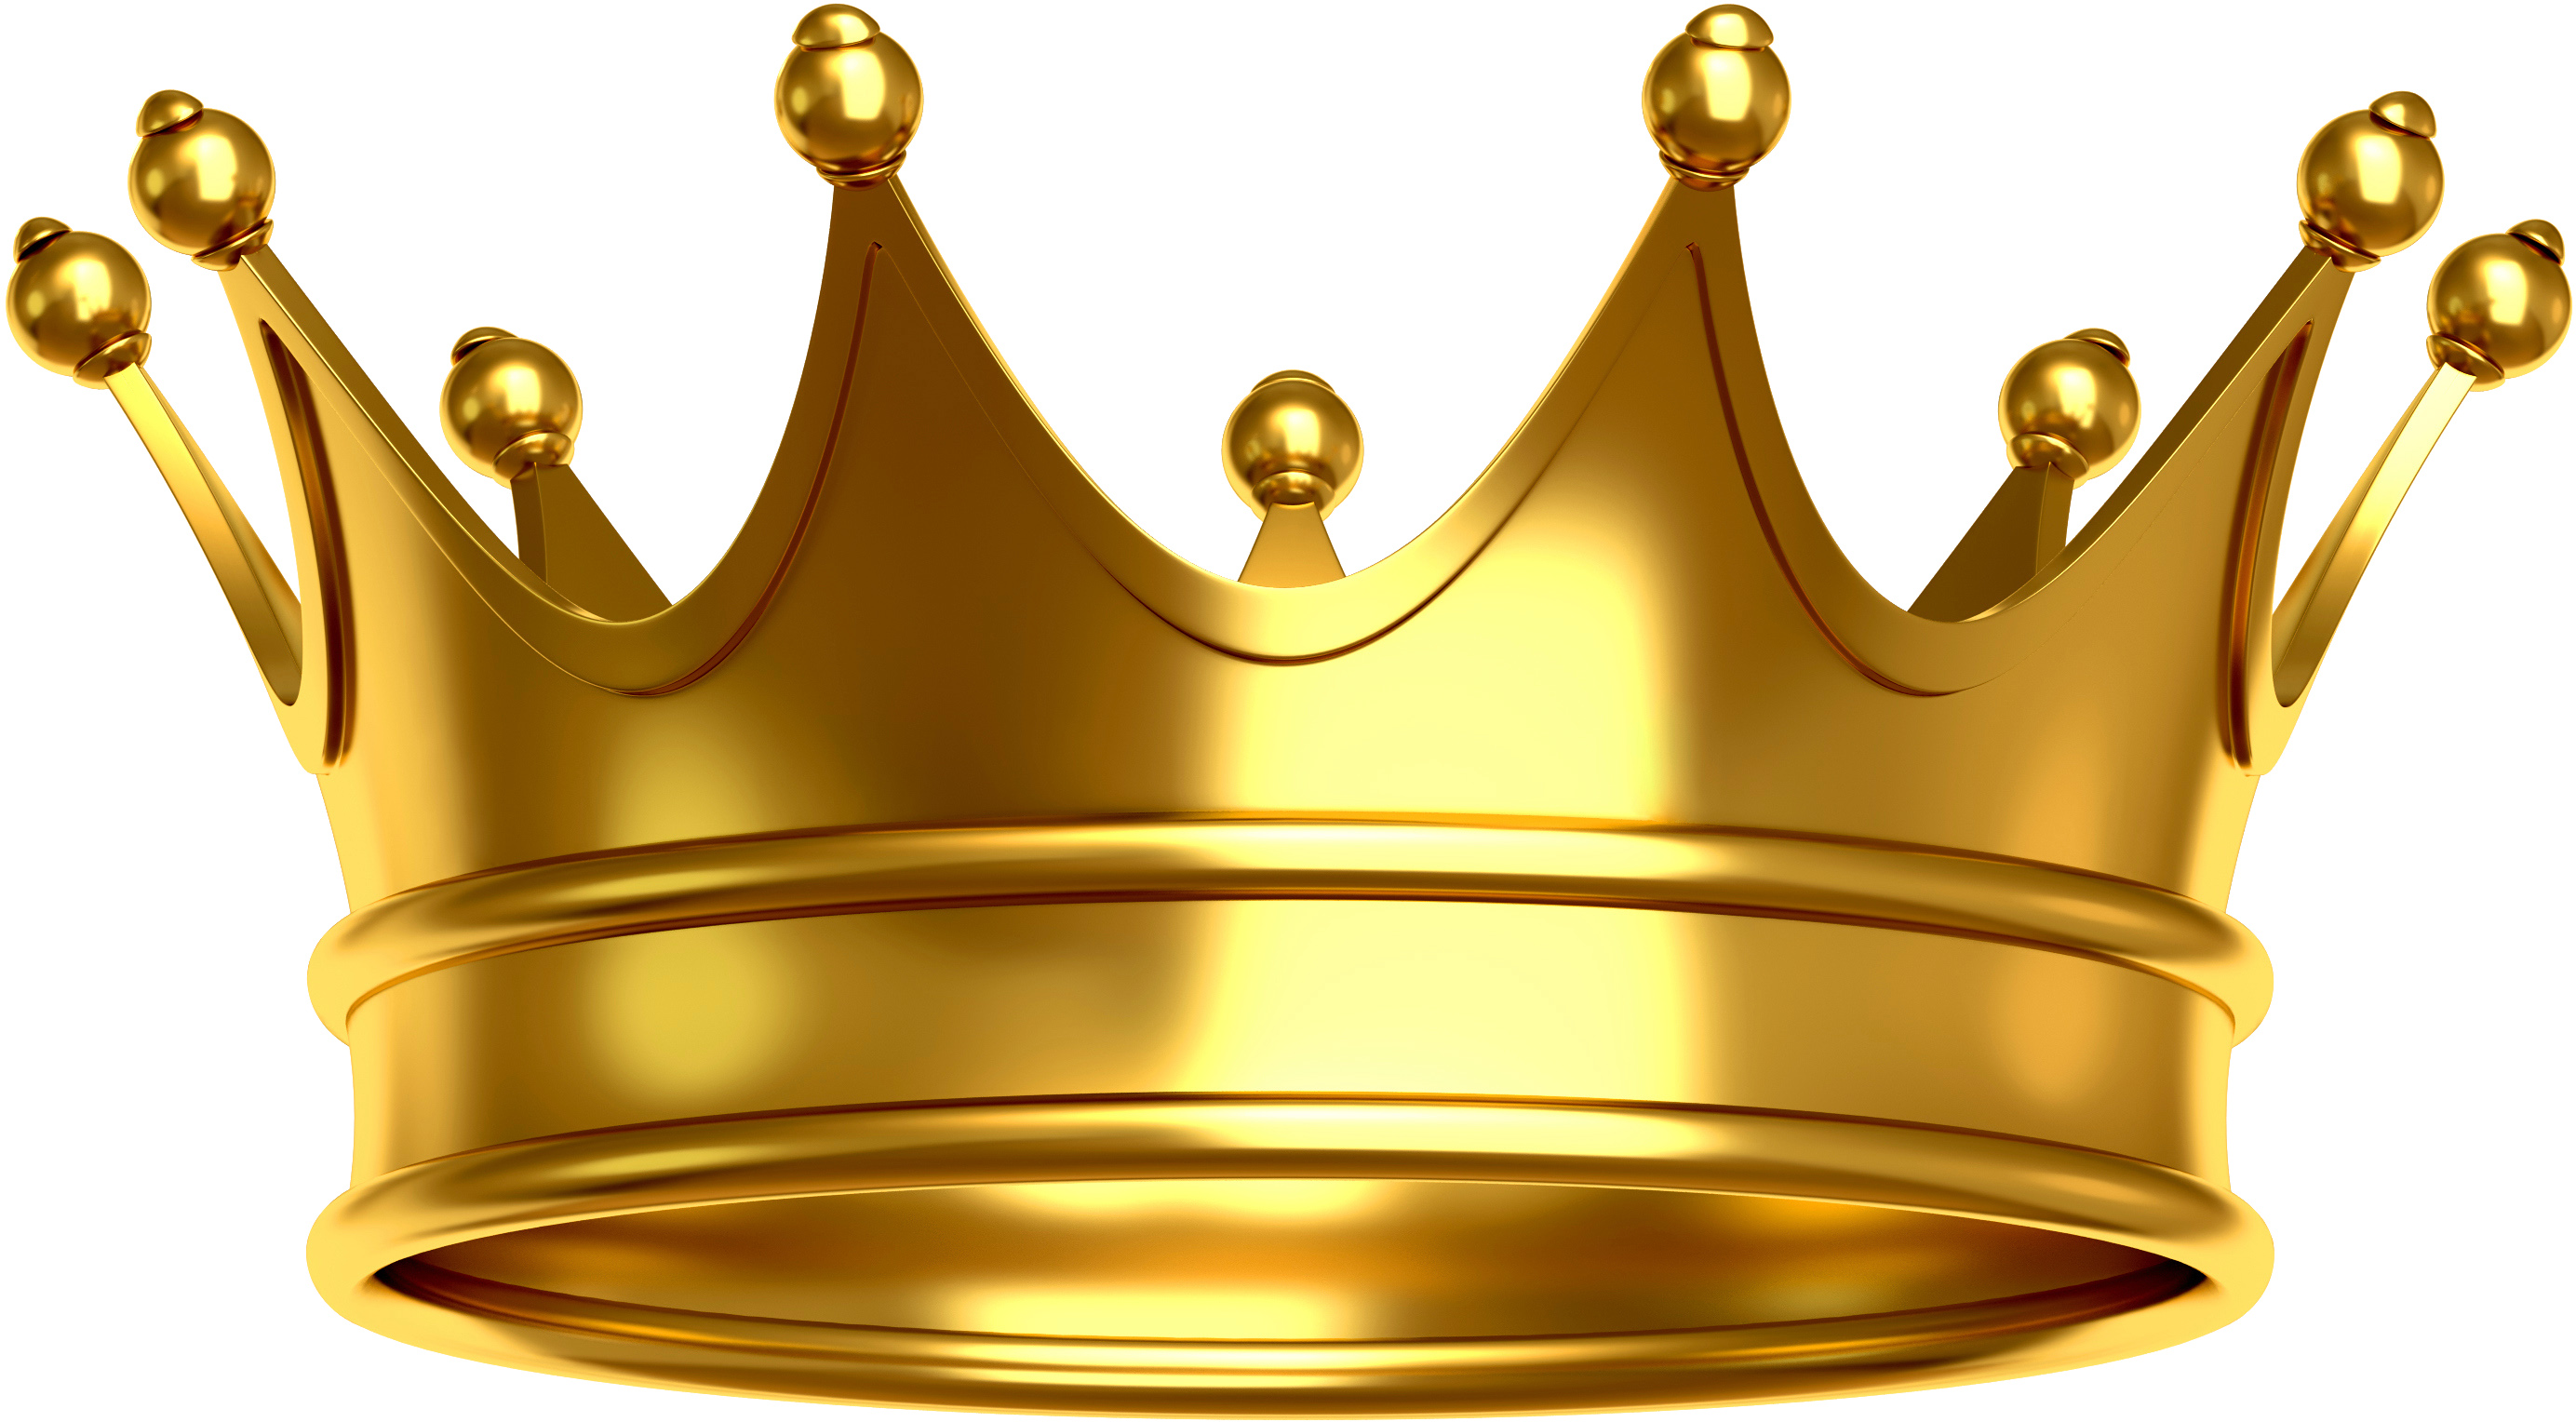 Crown Free Images At Clker Com Vector Clip Art Online Royalty